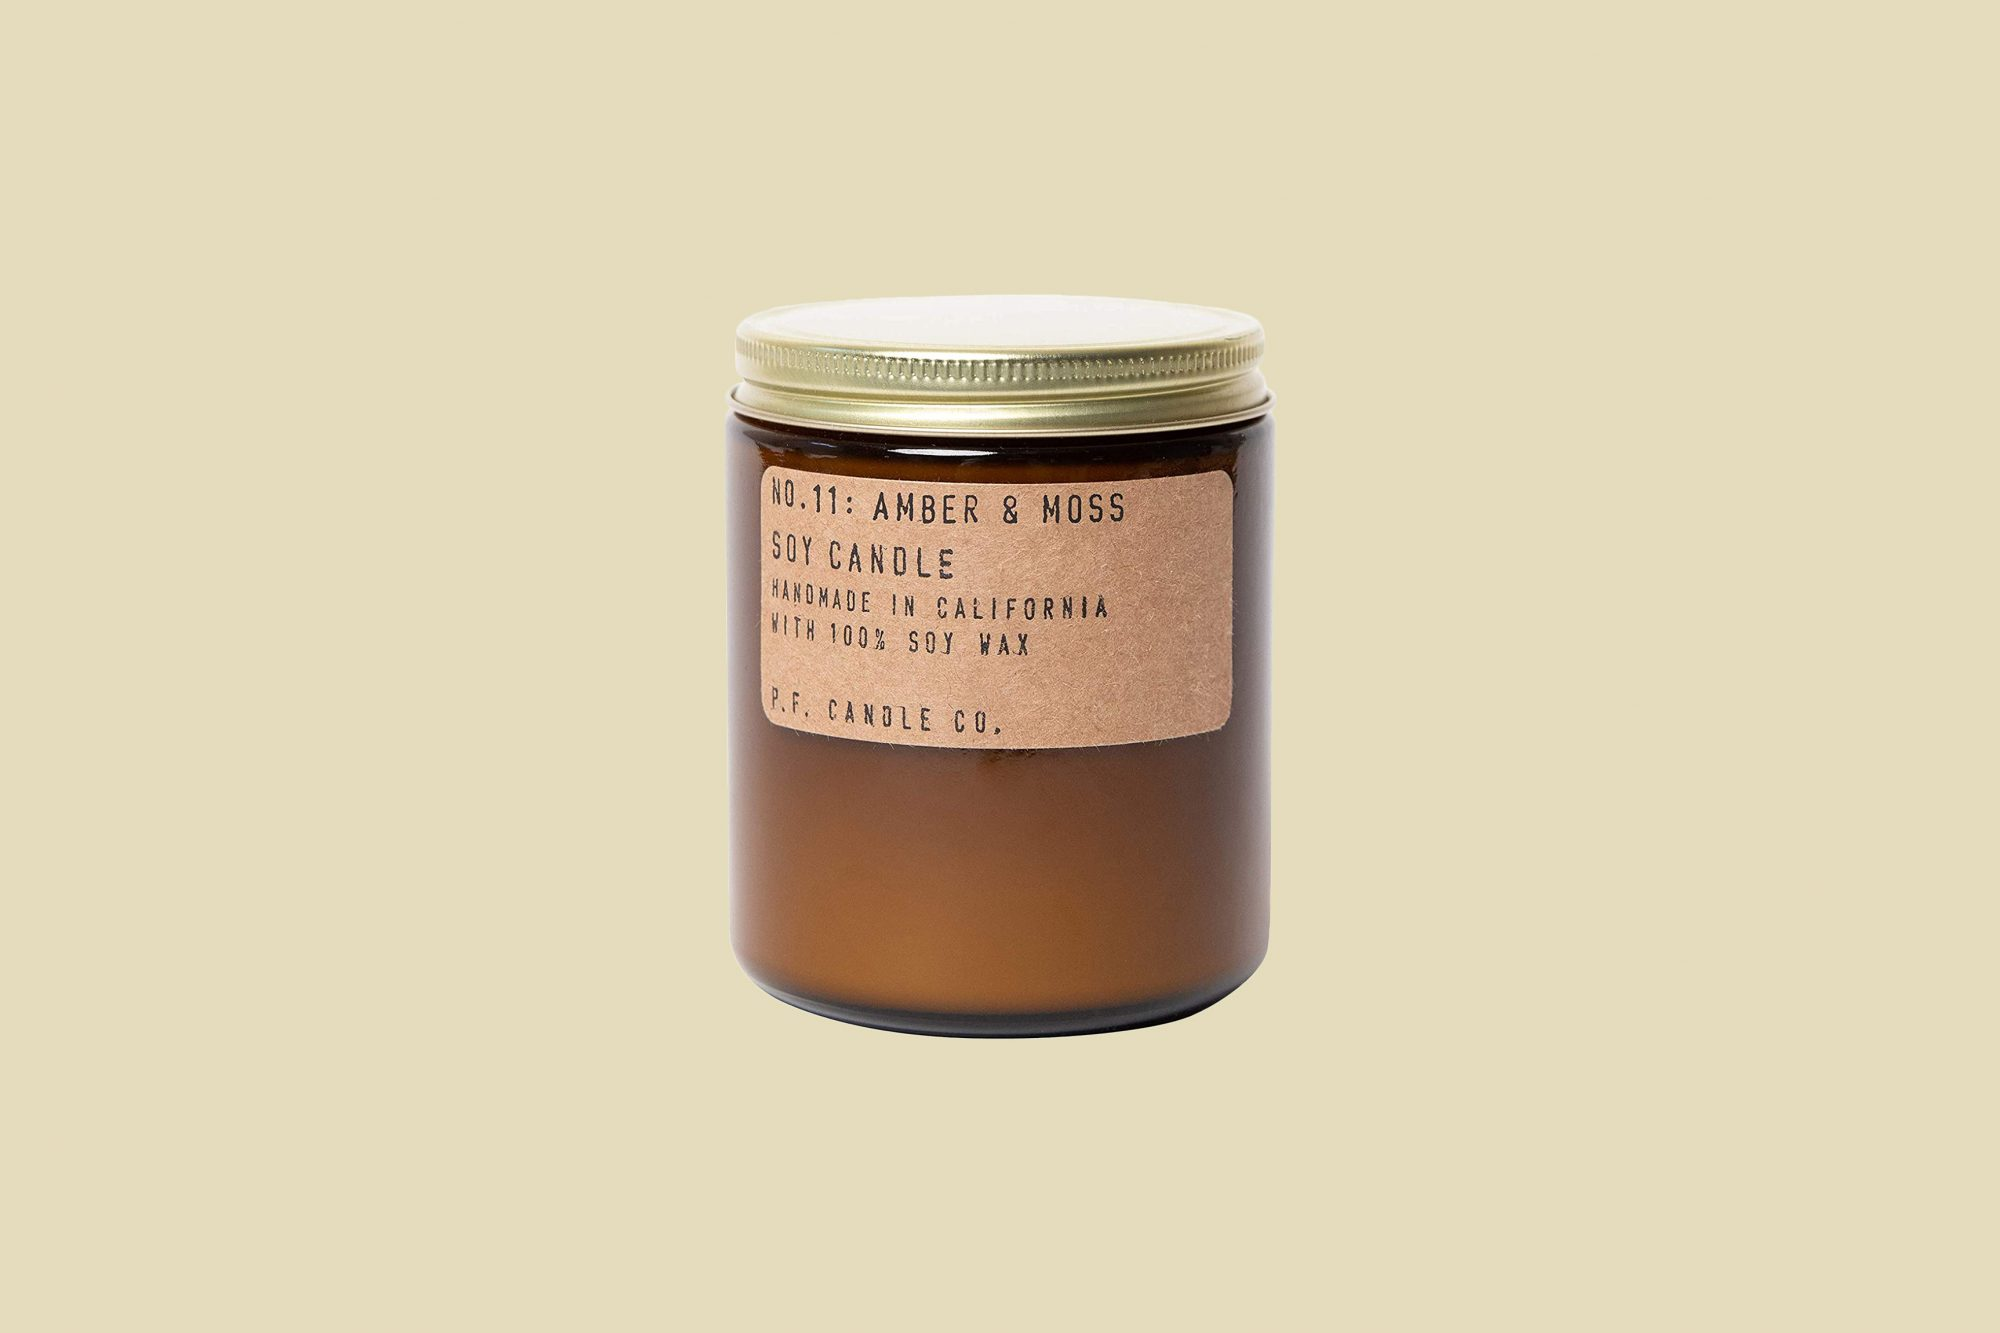 """PF. Candle Co """"Amber & Moss"""" Standard Soy Candle"""